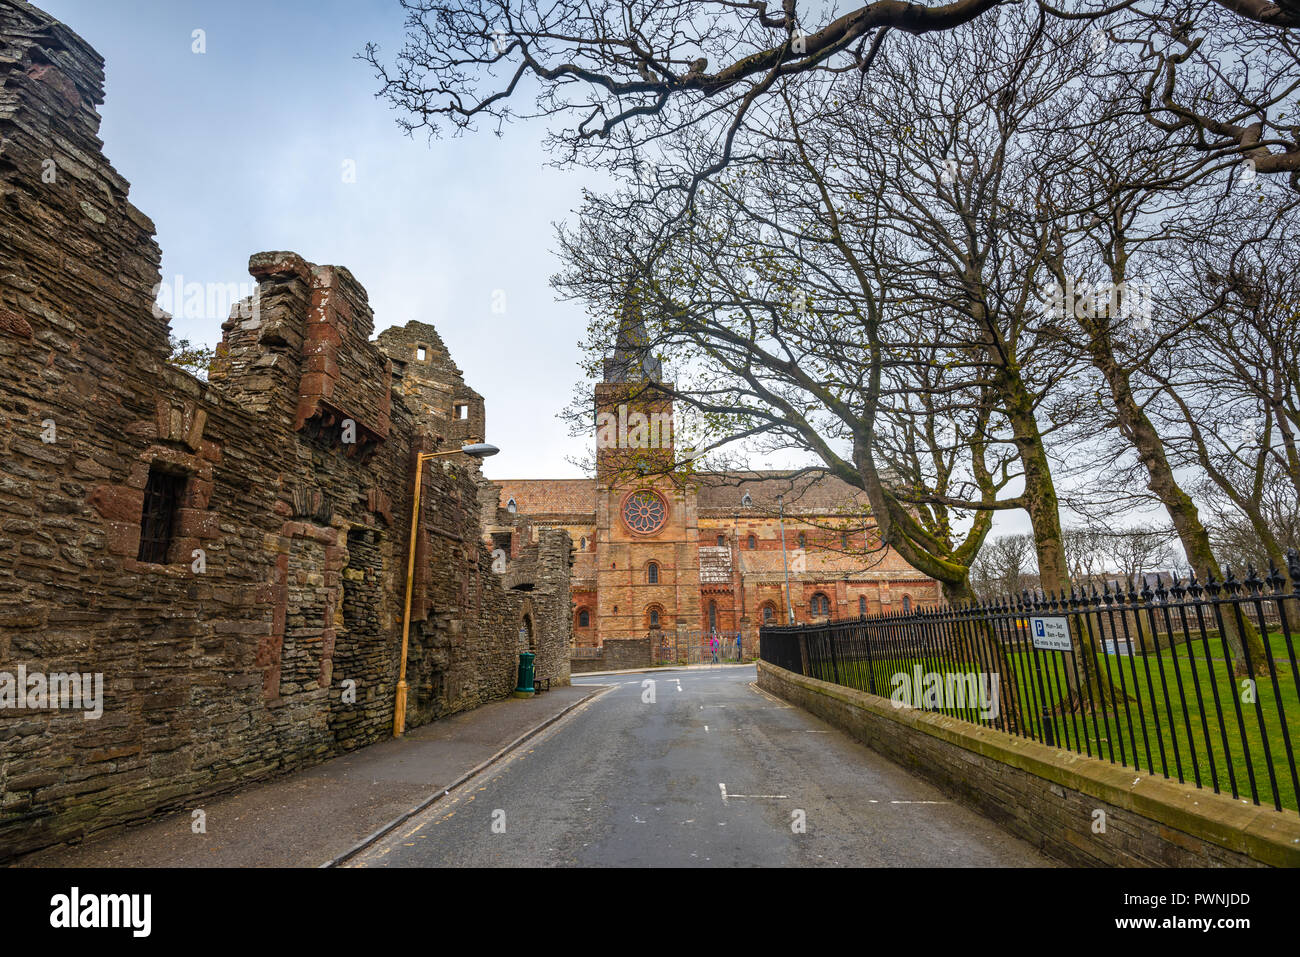 Bishop's and Earl's Palaces and Norman St Magnus Cathedral, Kirkwall, Orkney Islands, Scotland, United Kingdom - Stock Image